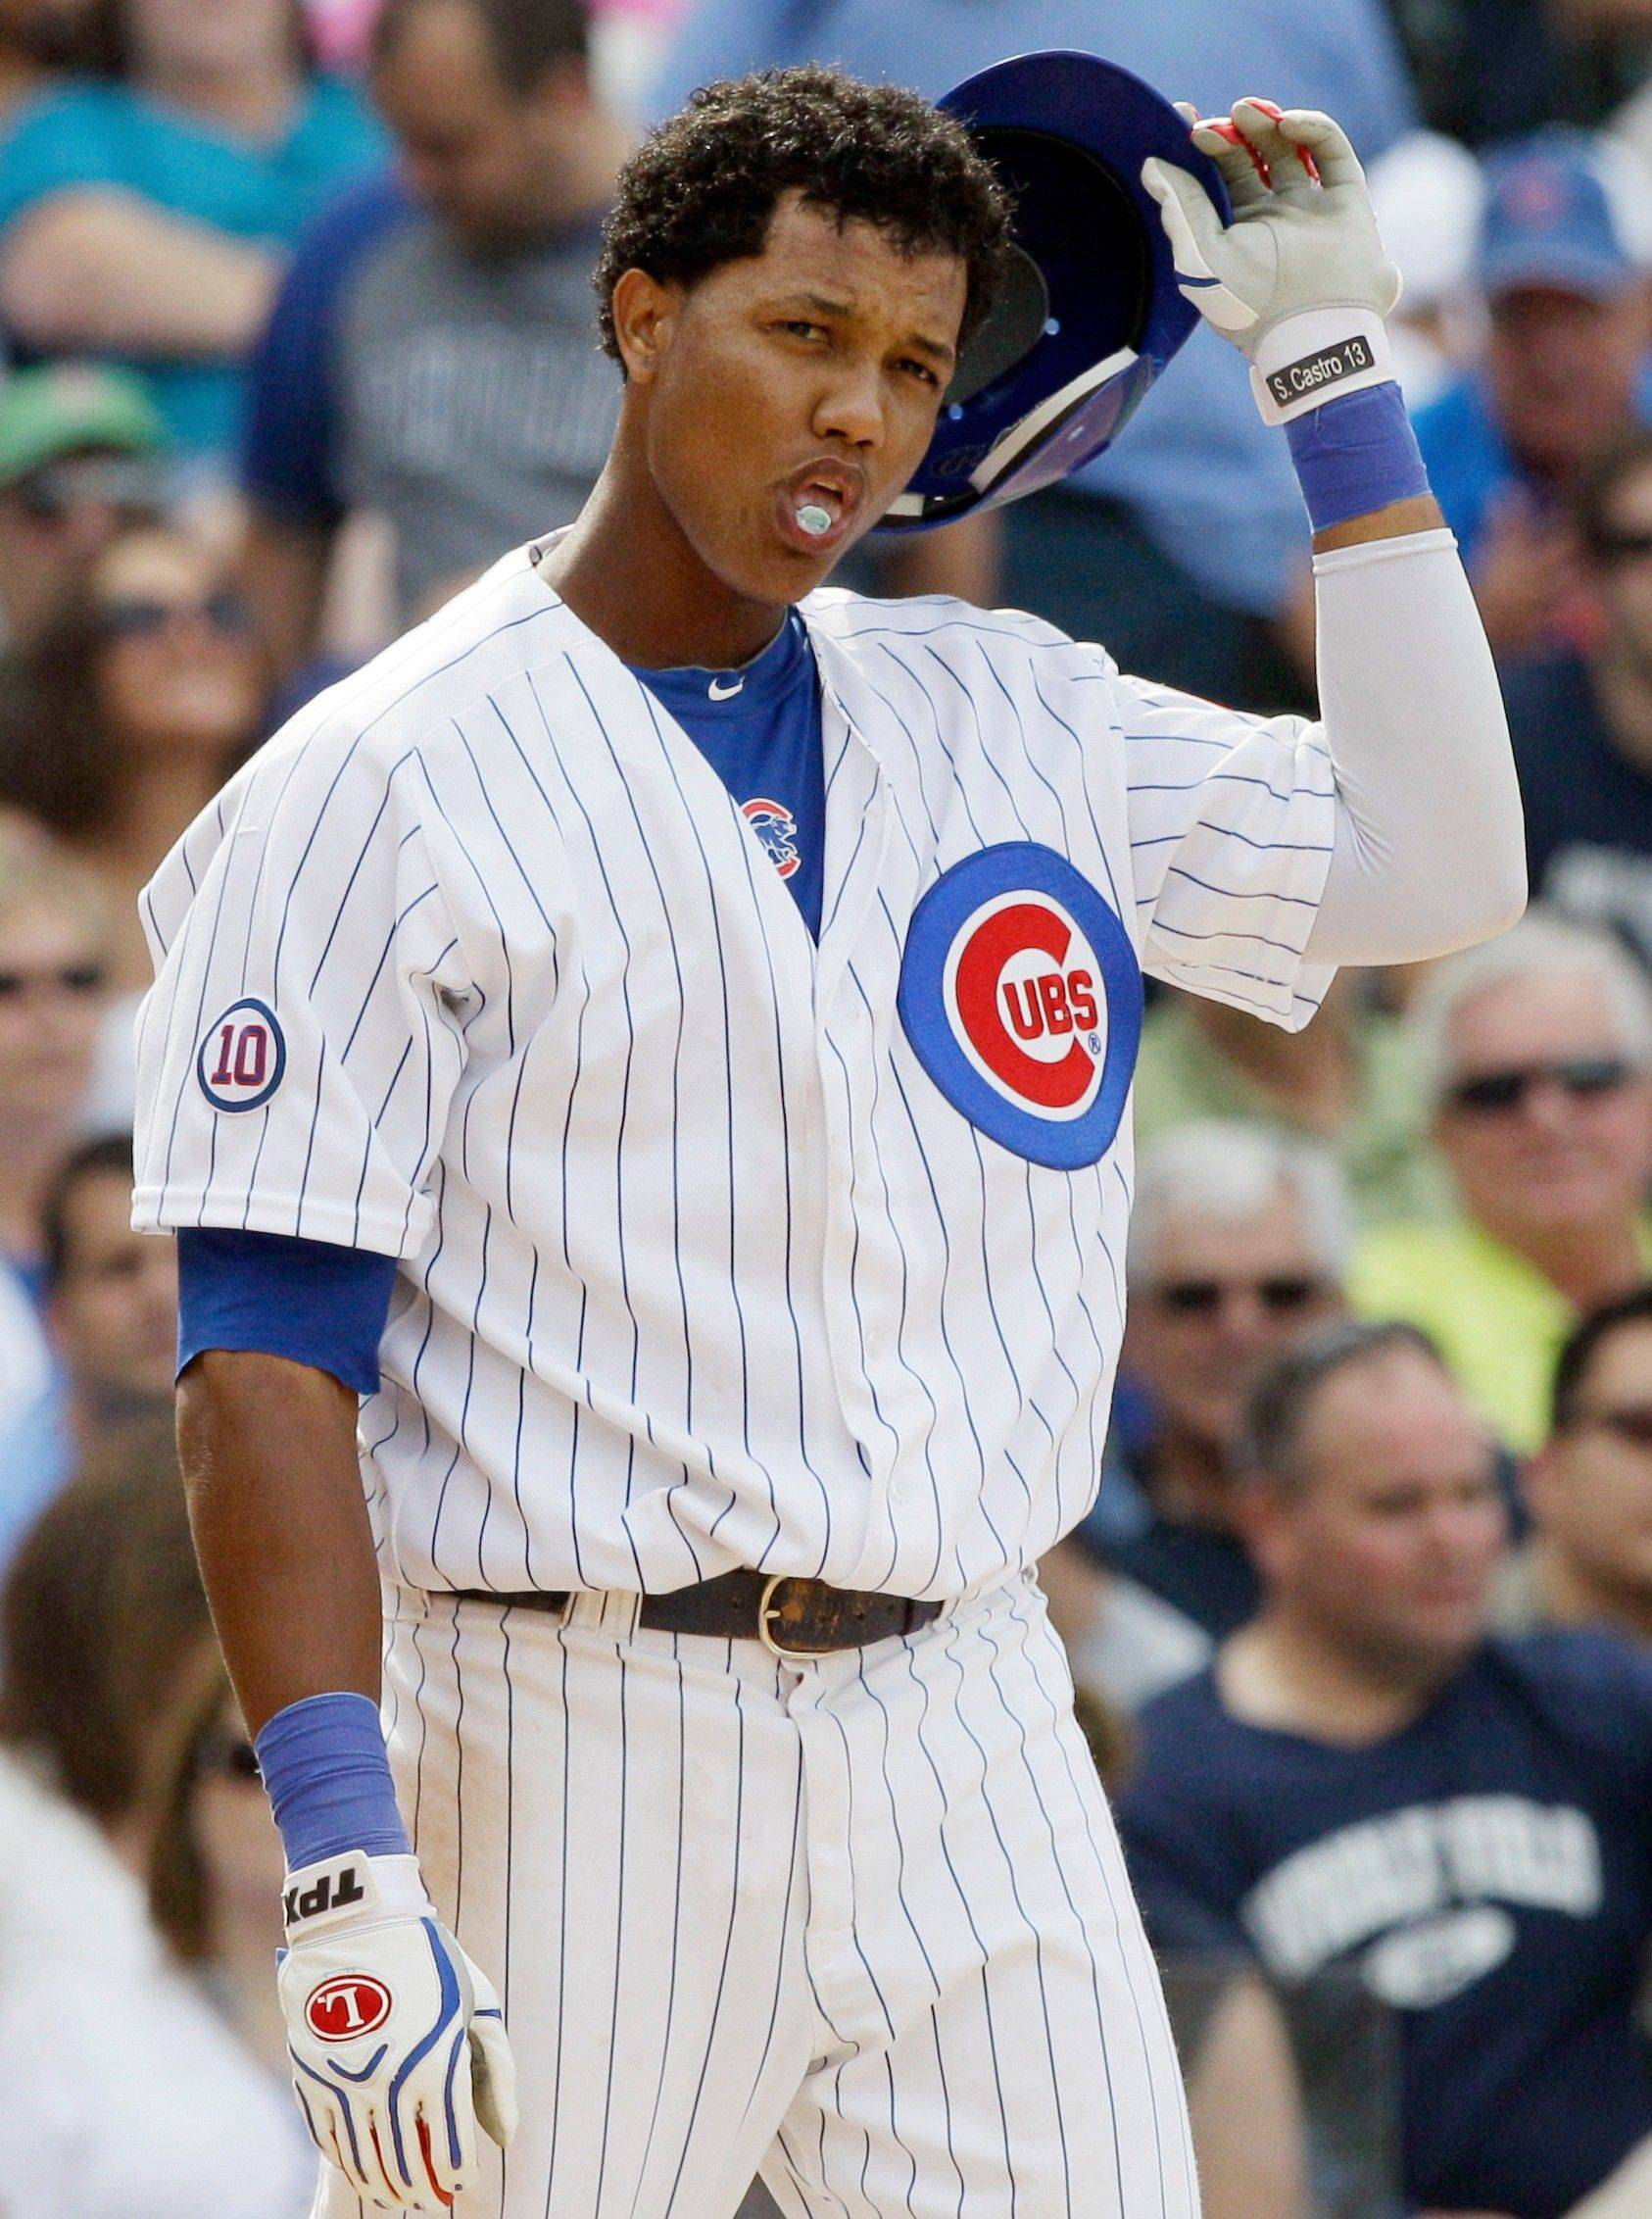 Cubs' Starlin Castro questioned by Chicago police, issues statement